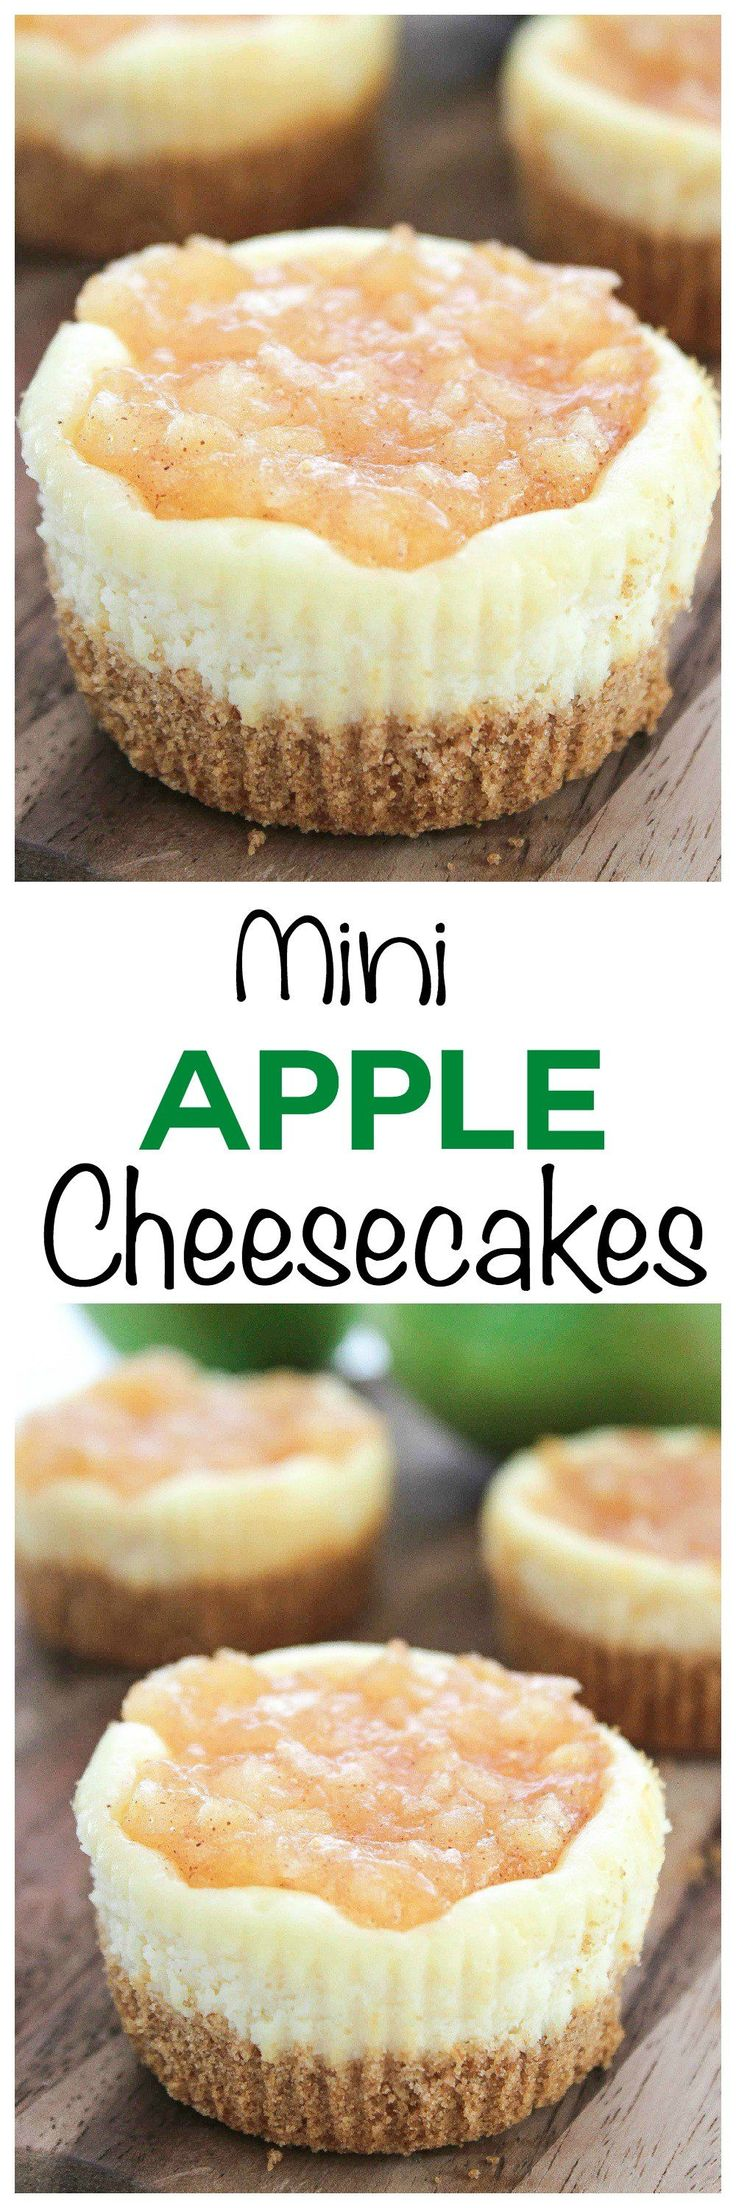 Apple Pie Mini Cheesecake Bites: Smooth and creamy cheesecake topped with tart apples. This hand held cheesecake is ready in under 30 minutes, so easy!